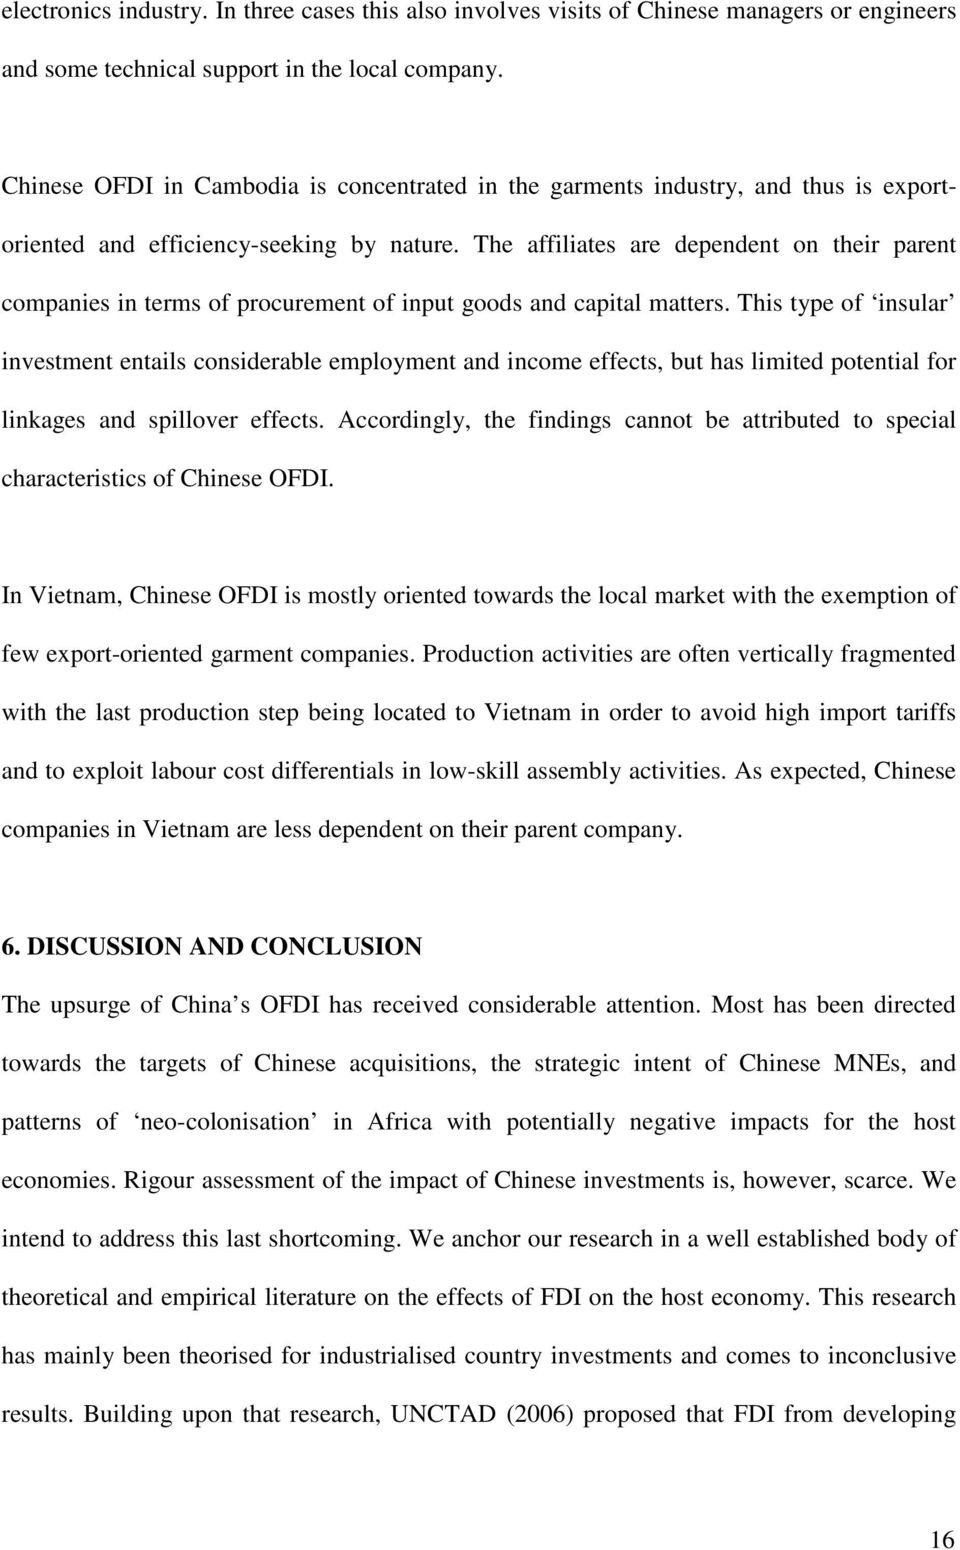 china s fdi in asean trends and impact on host countries pdf. Black Bedroom Furniture Sets. Home Design Ideas